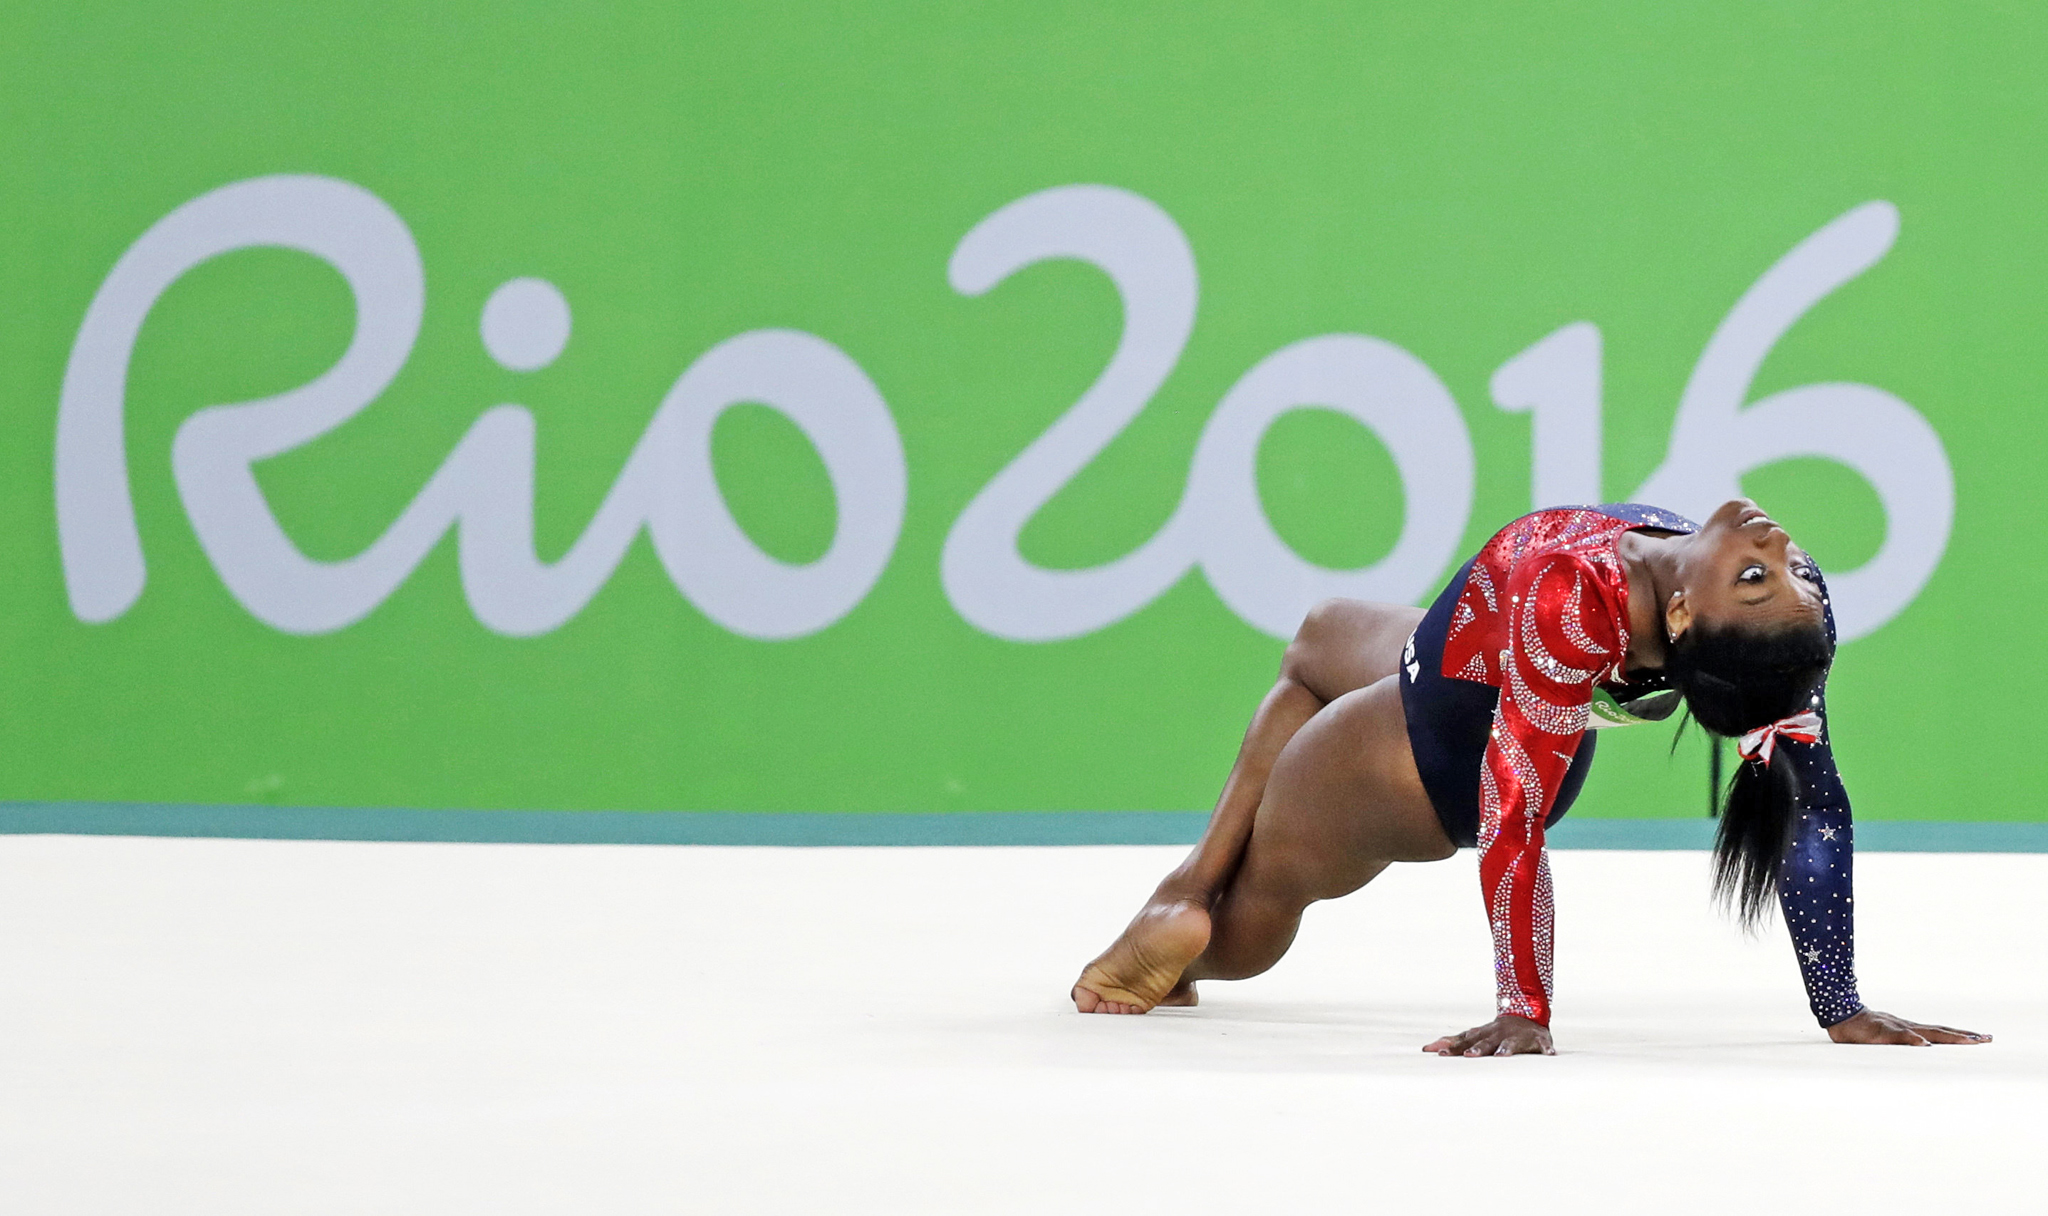 United States' Simone Biles performs on the floor during the artistic gymnastics women's qualification at the 2016 Summer Olympics in Rio de Janeiro, Brazil, Sunday, Aug. 7, 2016.